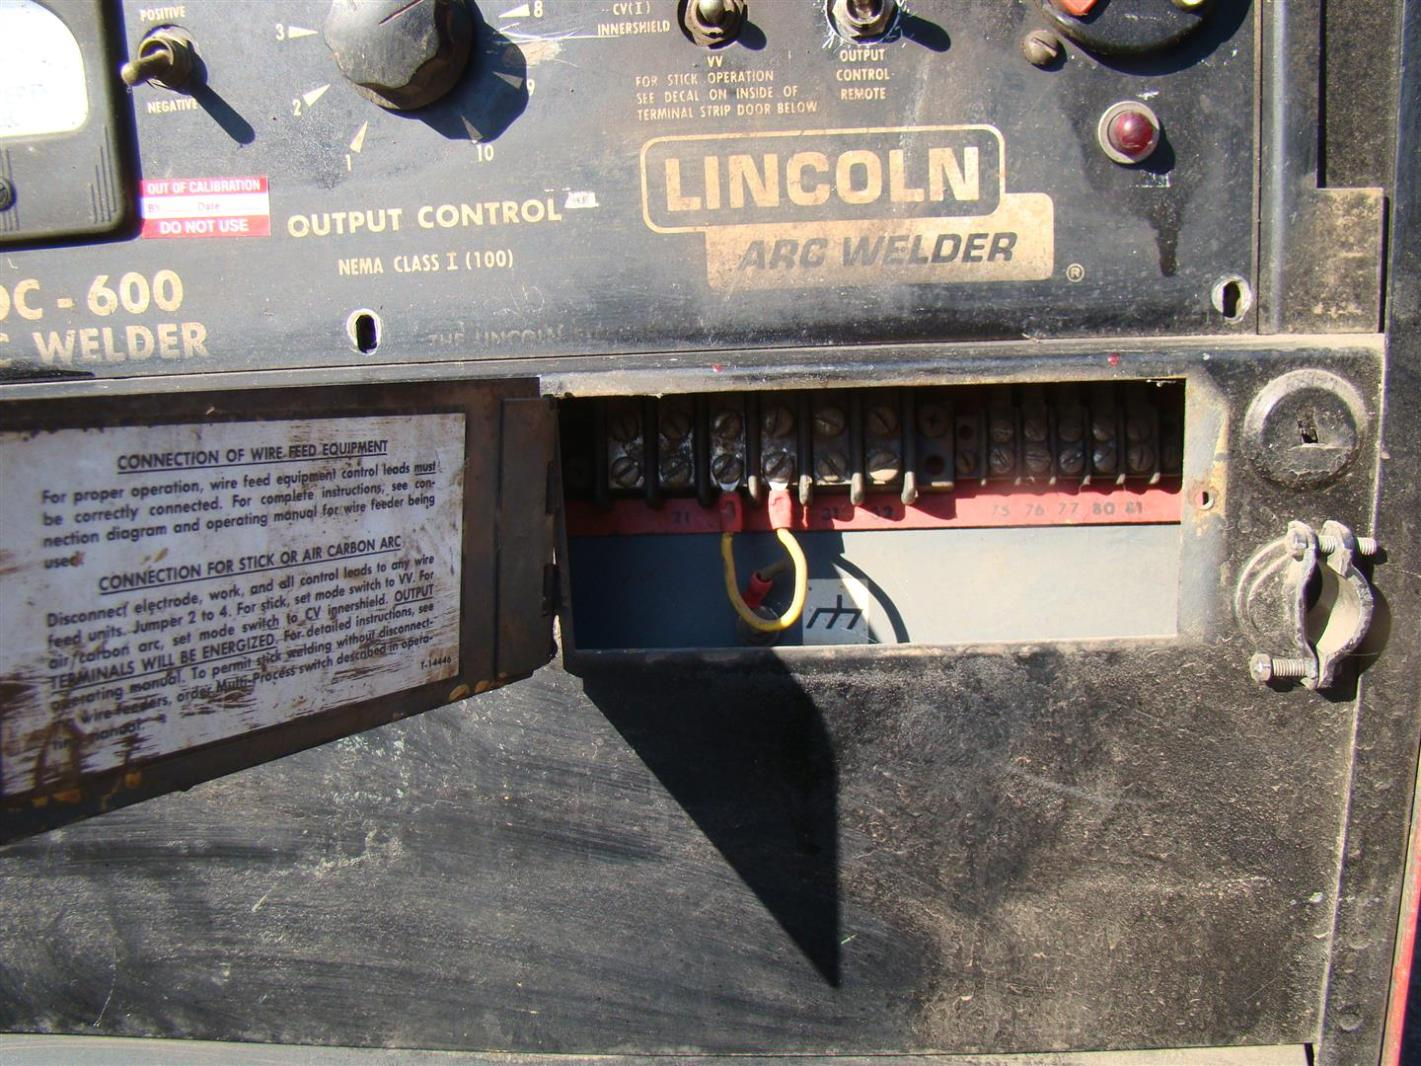 lincoln electric welder wiring diagram 12 lead three phase motor idealarc dc 600 30 images